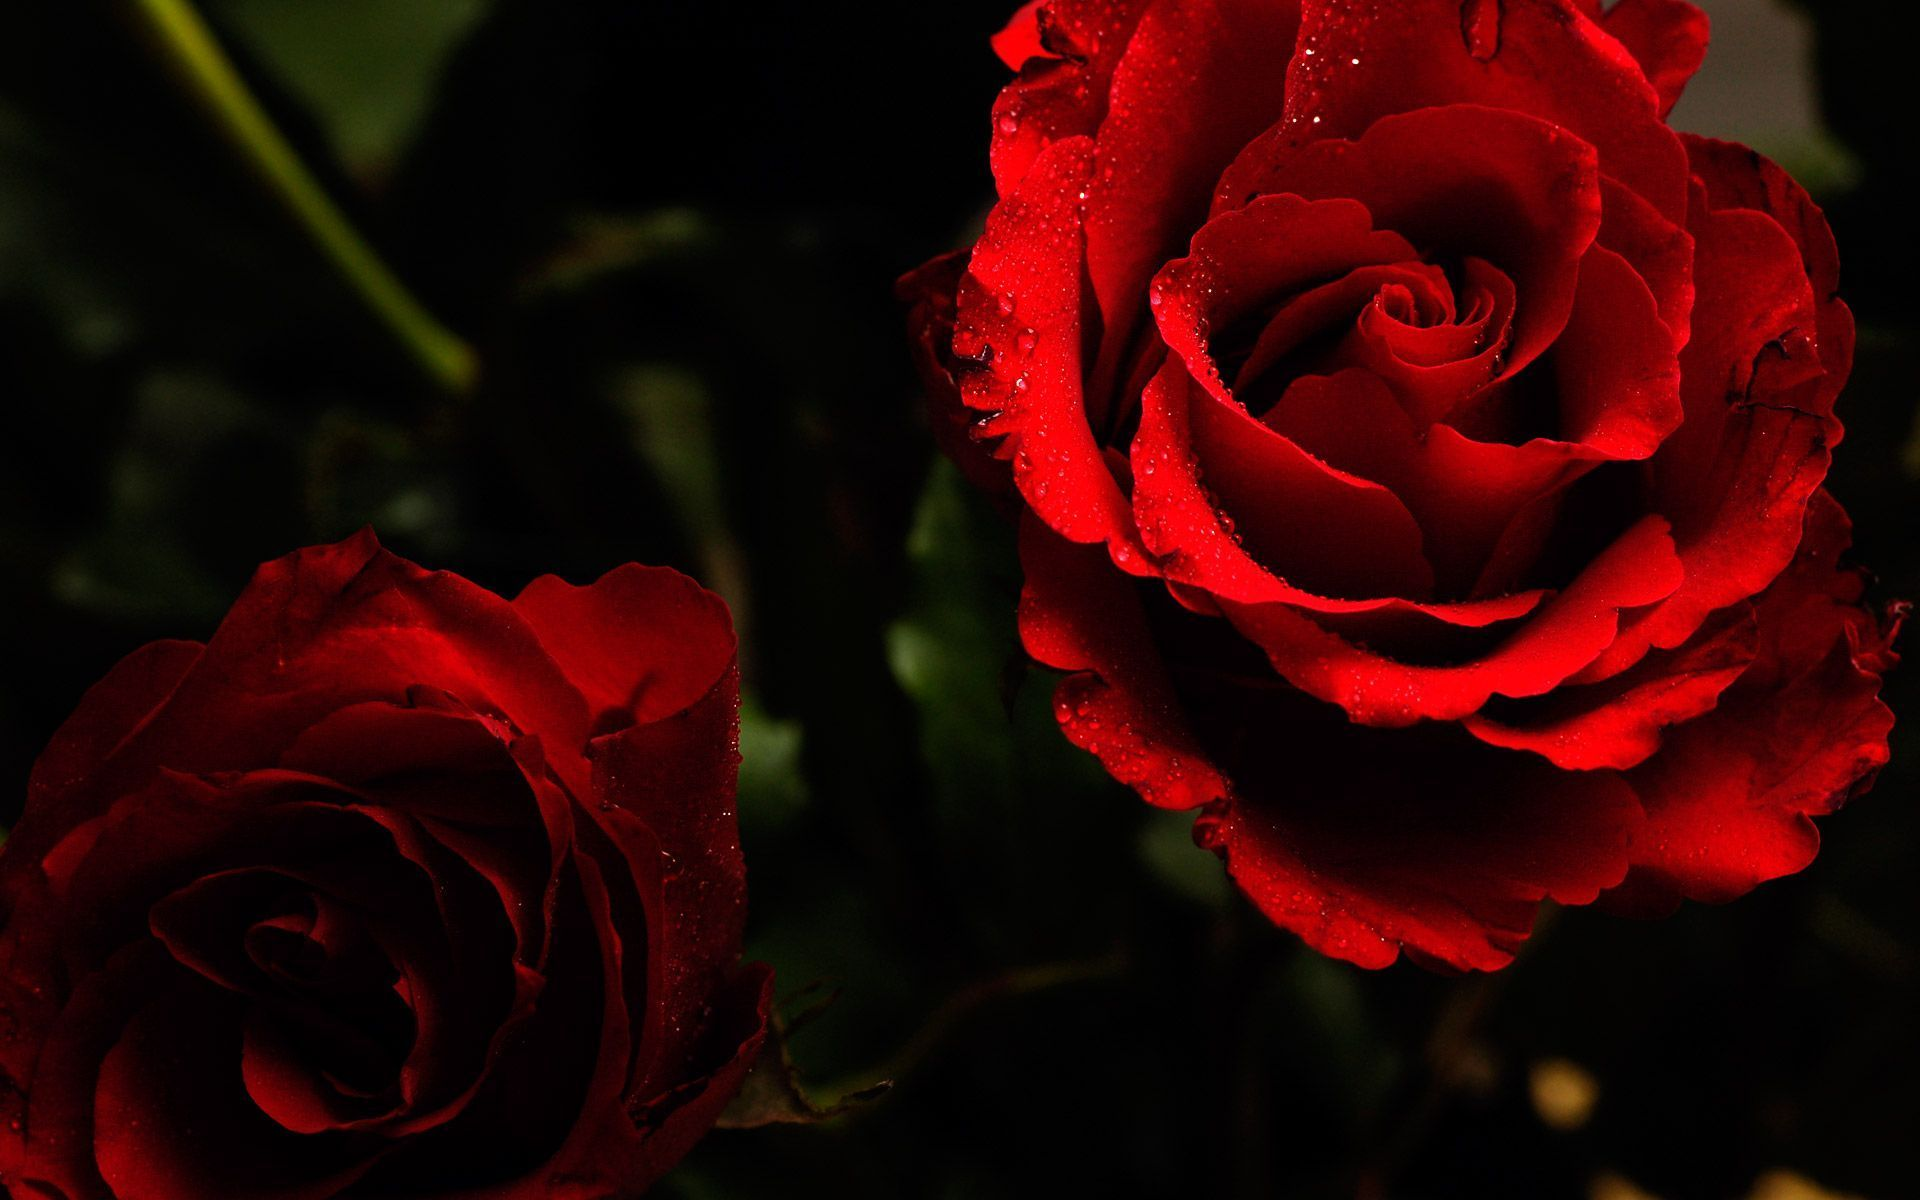 rose hd wallpapers backgrounds wallpaper 1920a—1080 rose images wallpapers 41 wallpapers